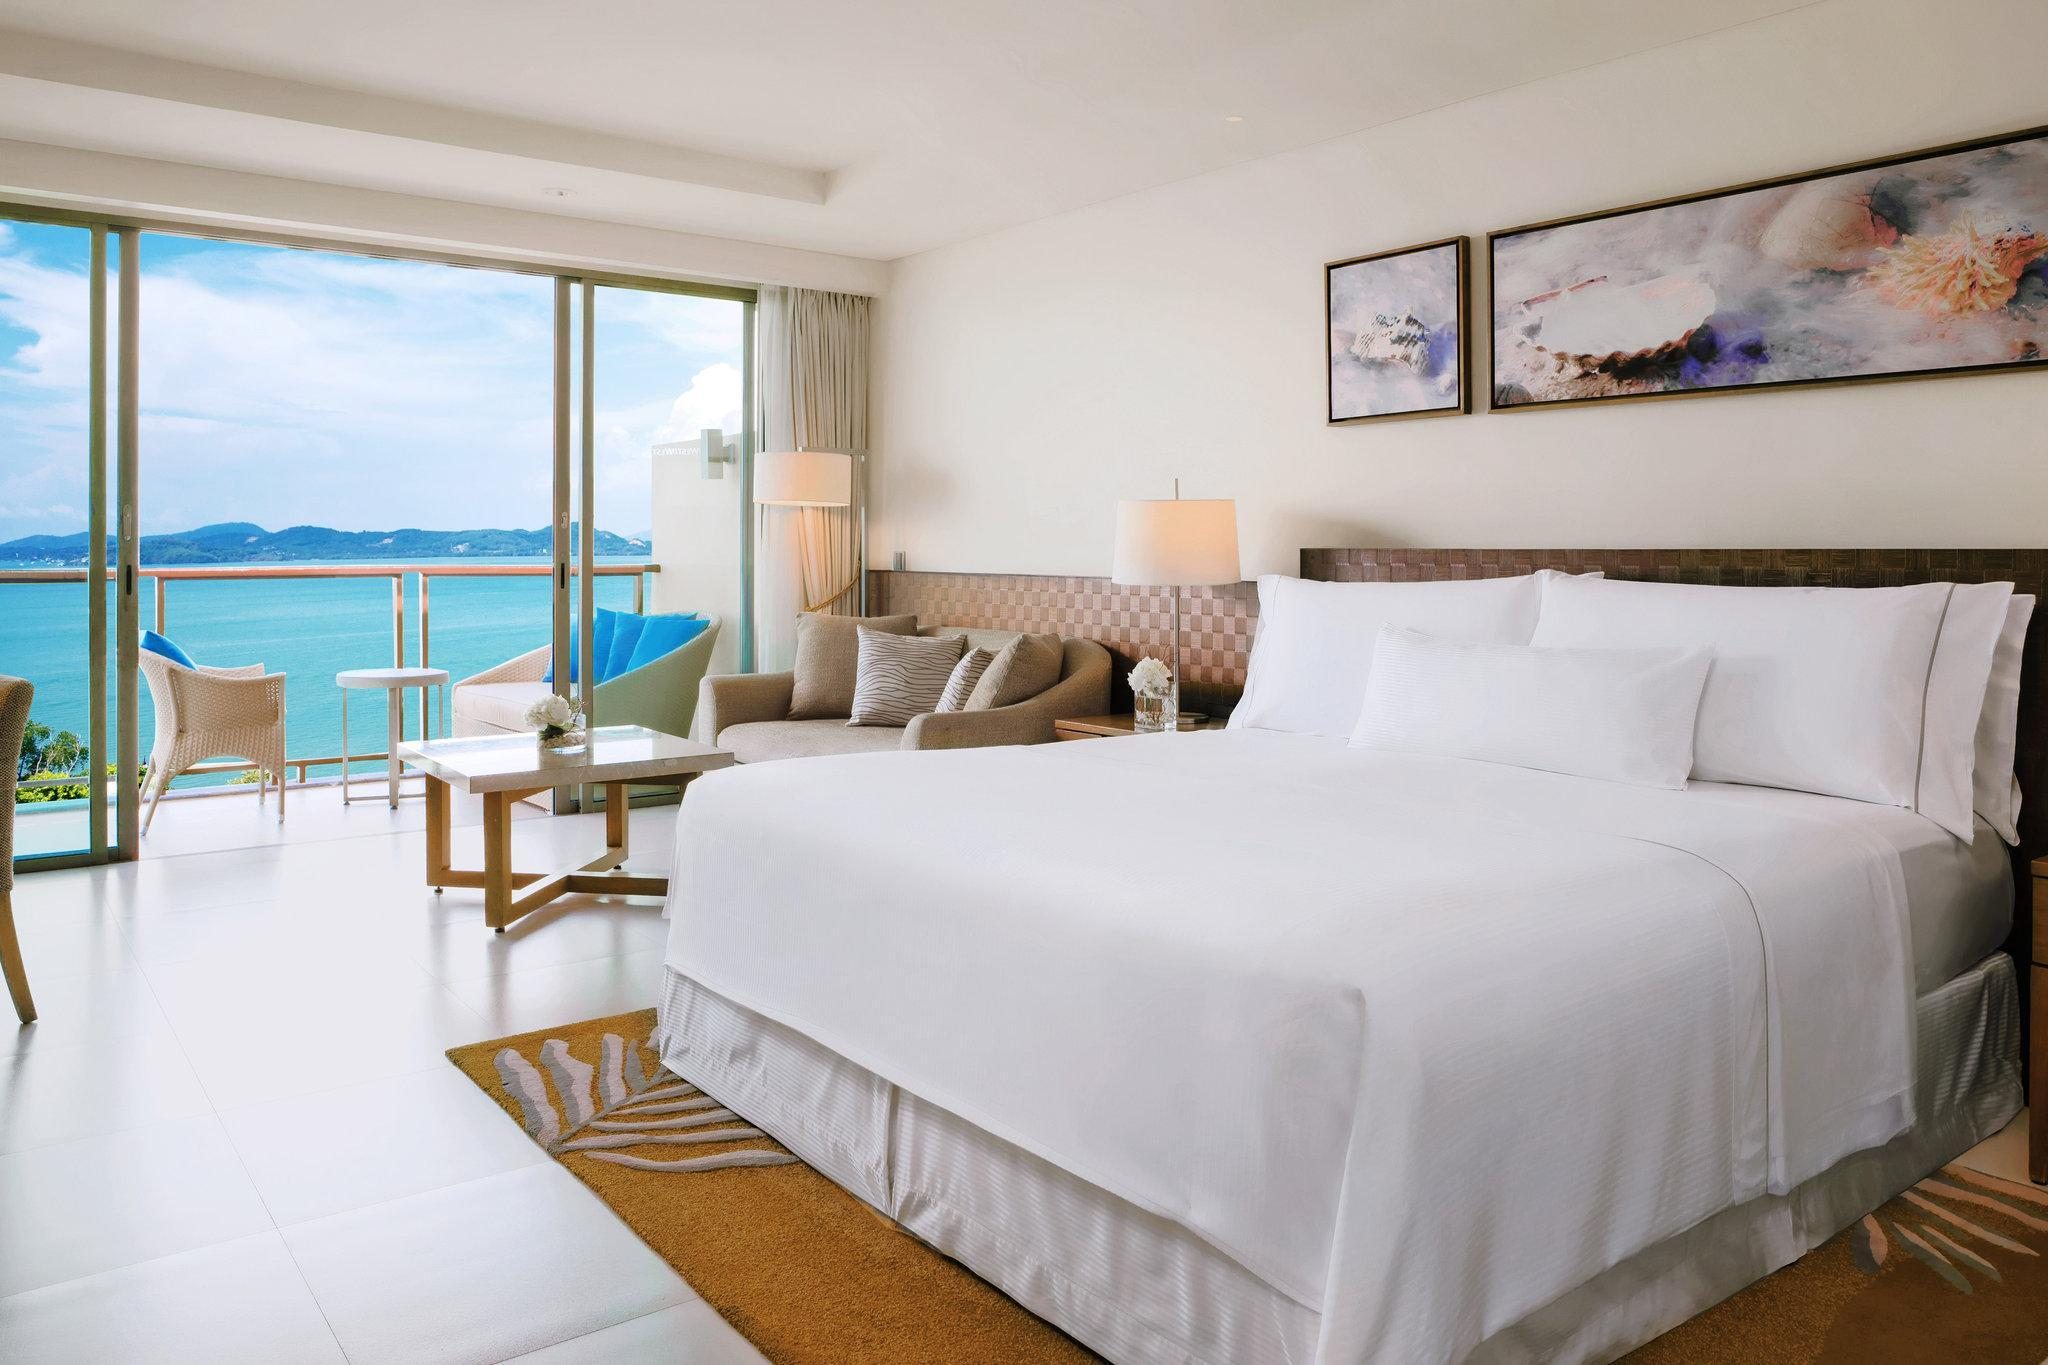 Deluxe, Guest room, 1 King, Sea view